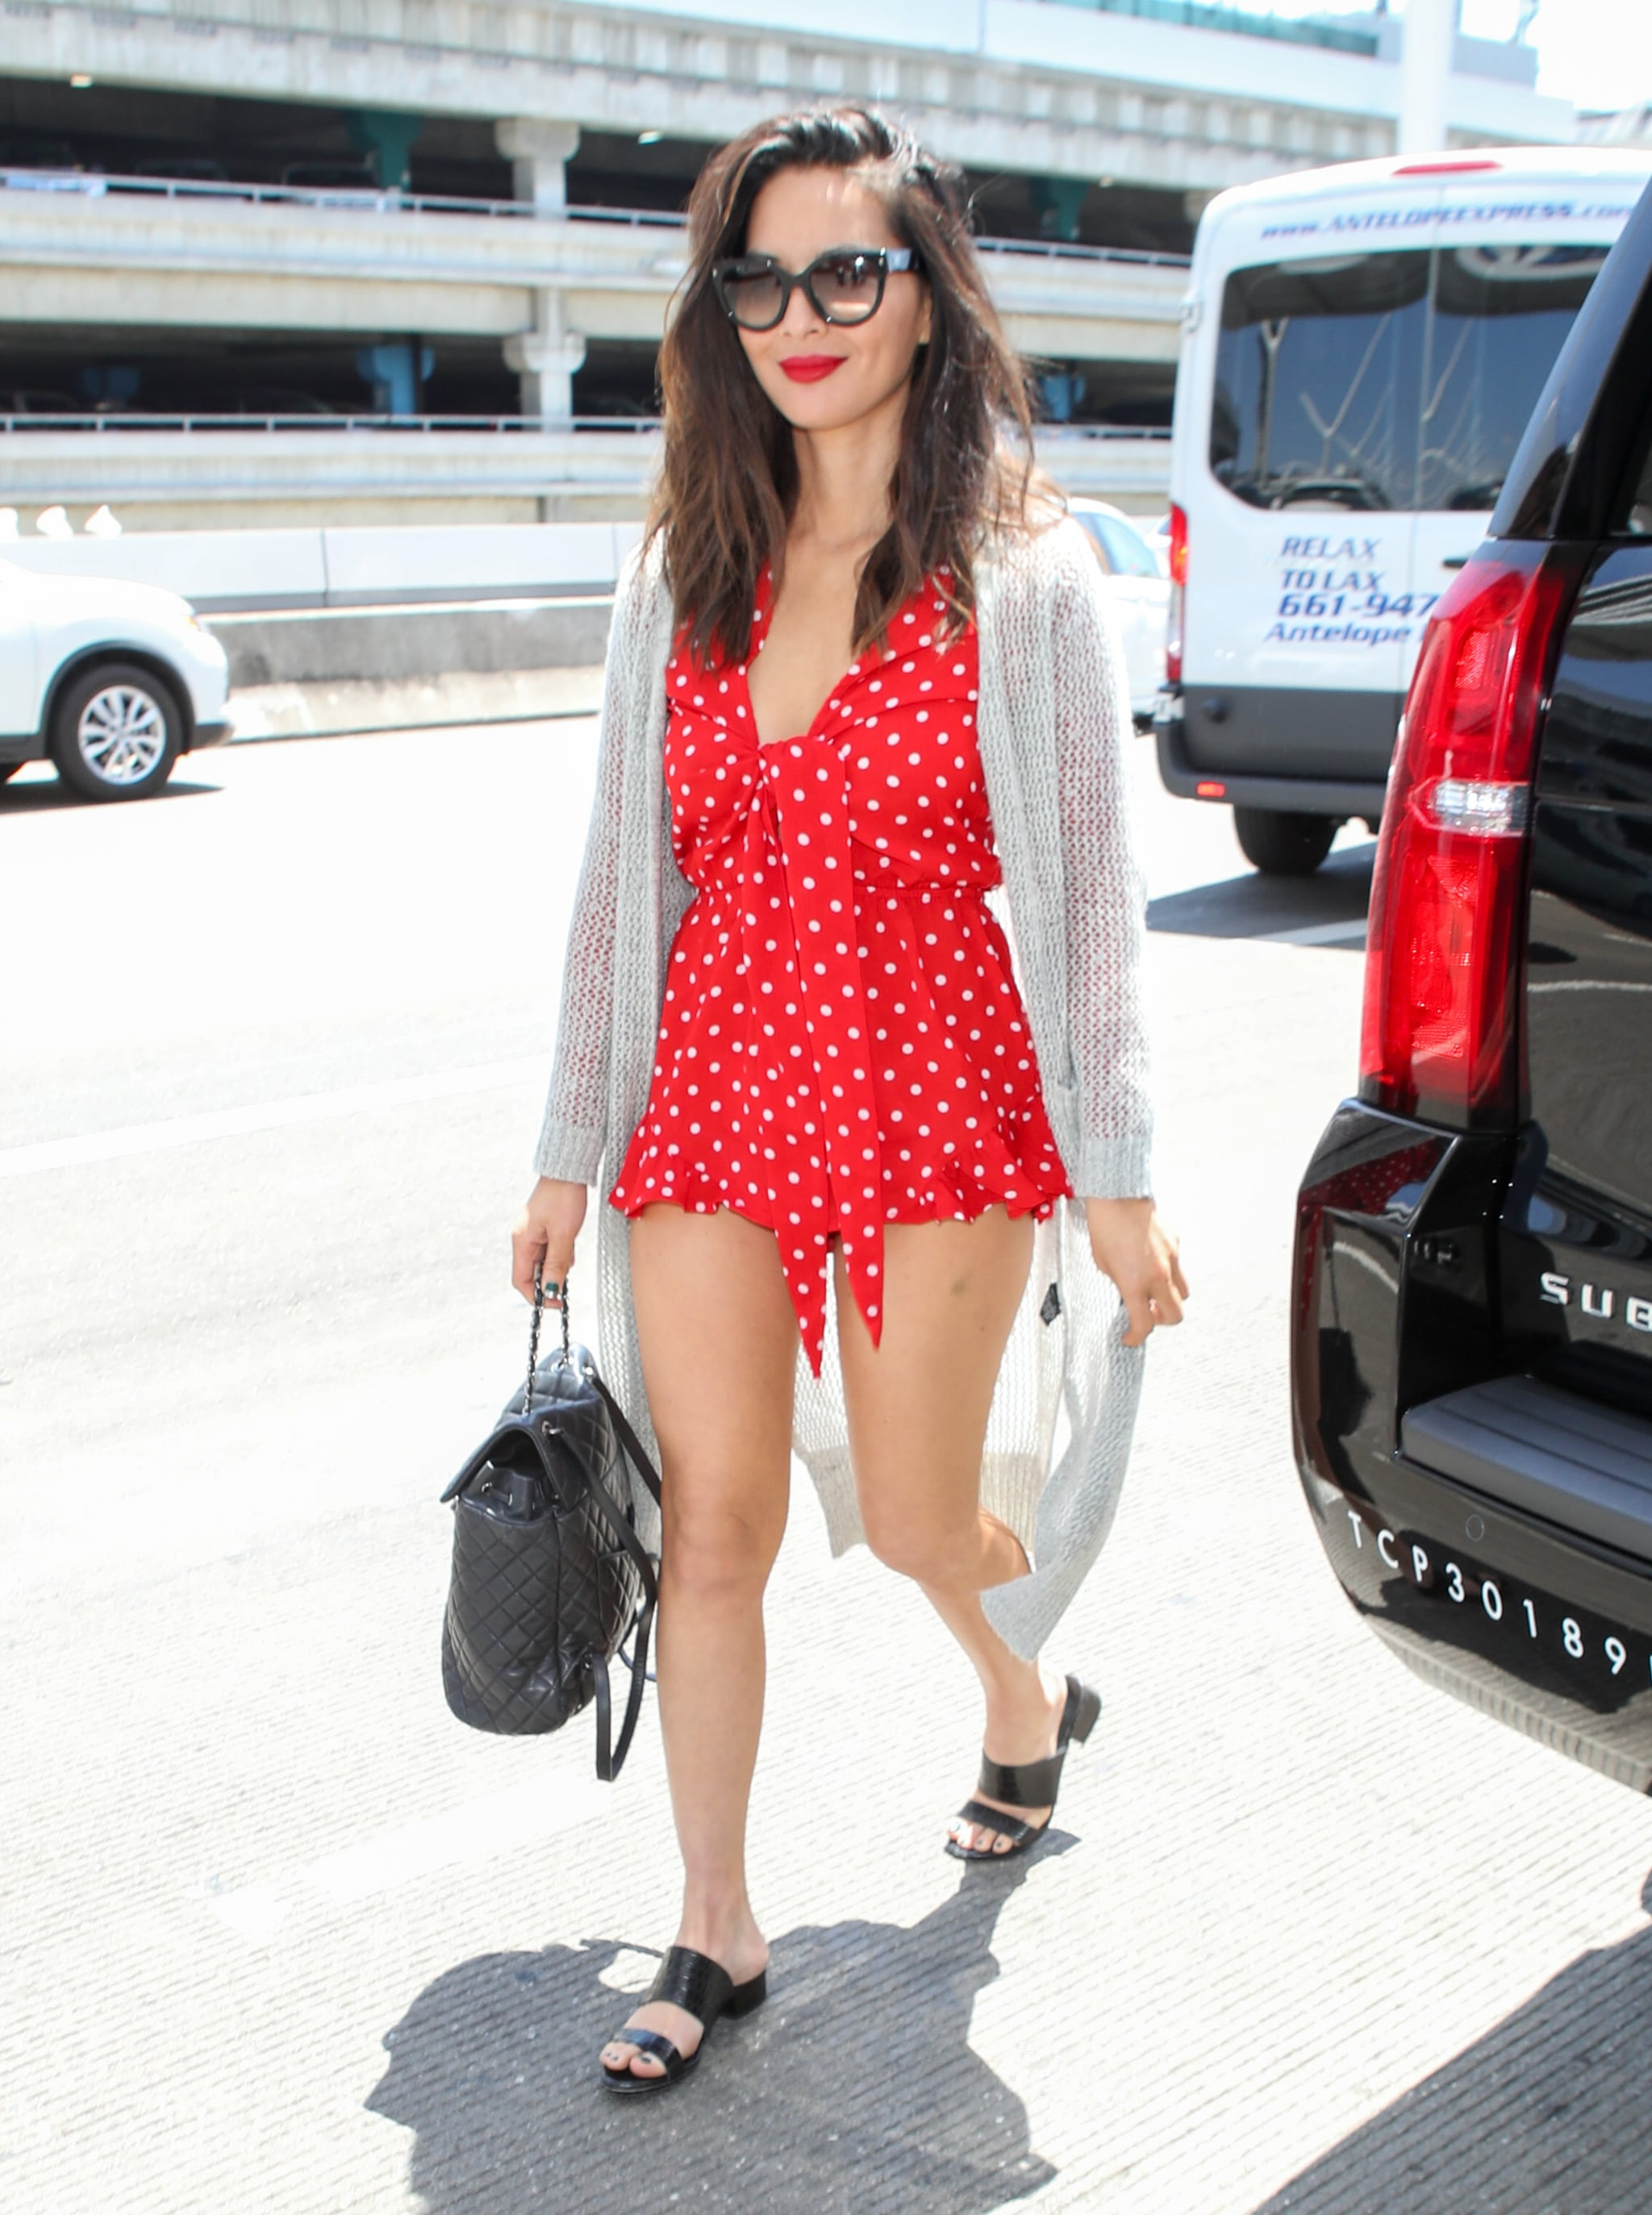 Fashion, Shopping & Style | 35 Impeccable Street Style Tips